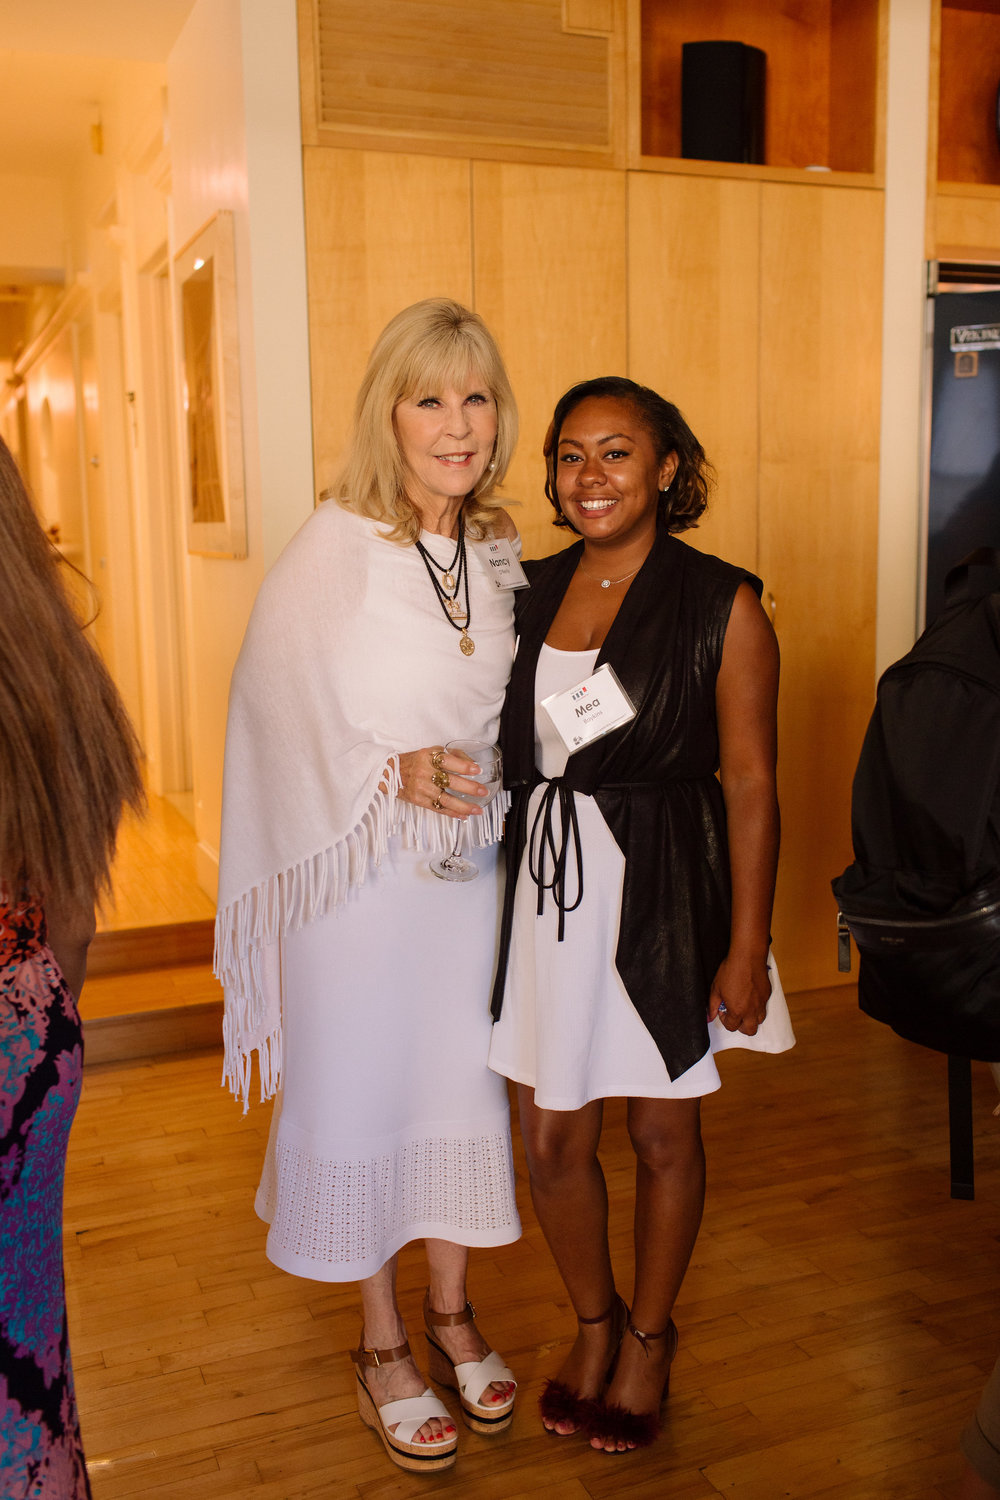 Networking with Dr. Nancy O'Reilly at Take the Lead's Event in NYC